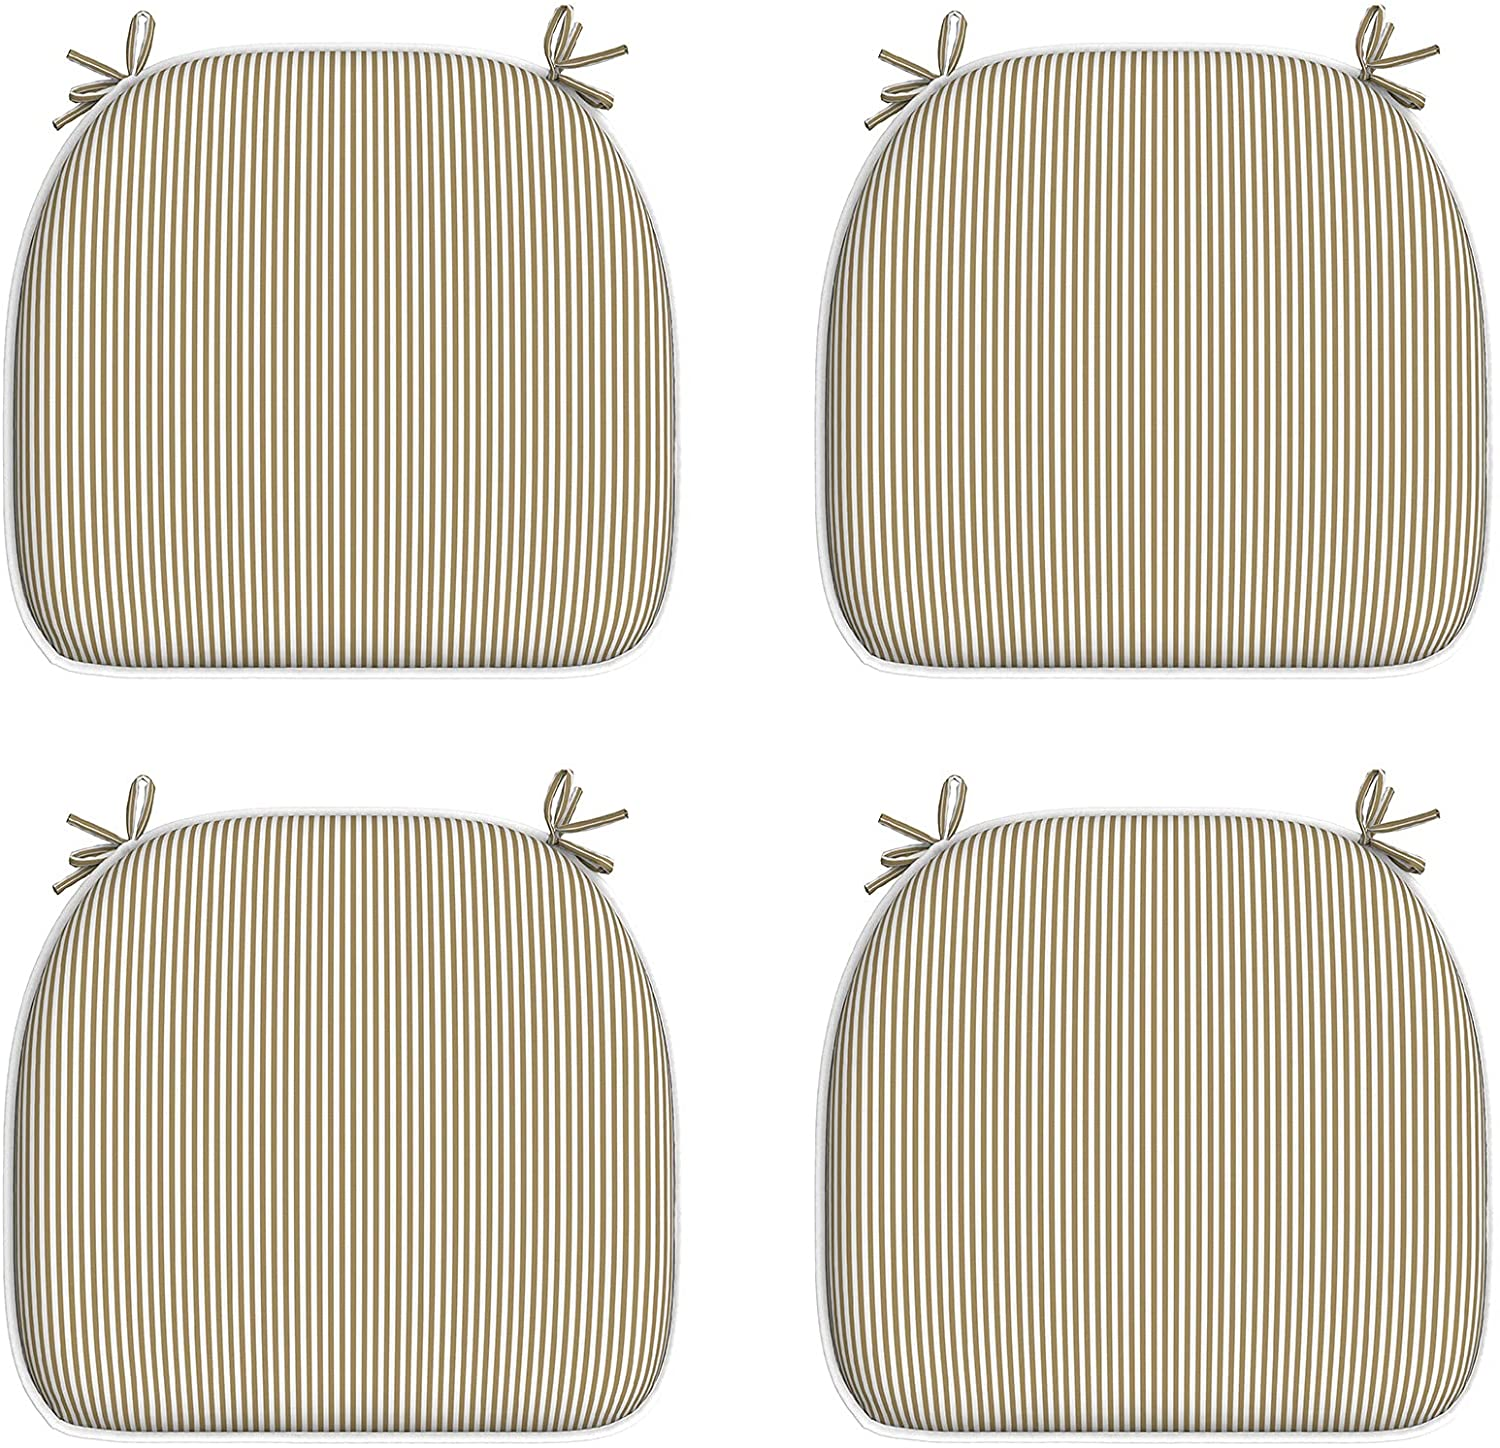 """LVTXIII Indoor/Outdoor Seat Cushions, Patio Chair Pads with Ties for Home Office and Patio Garden Furniture Decoration 16""""x17"""", Stripe Beige, Set of 4"""